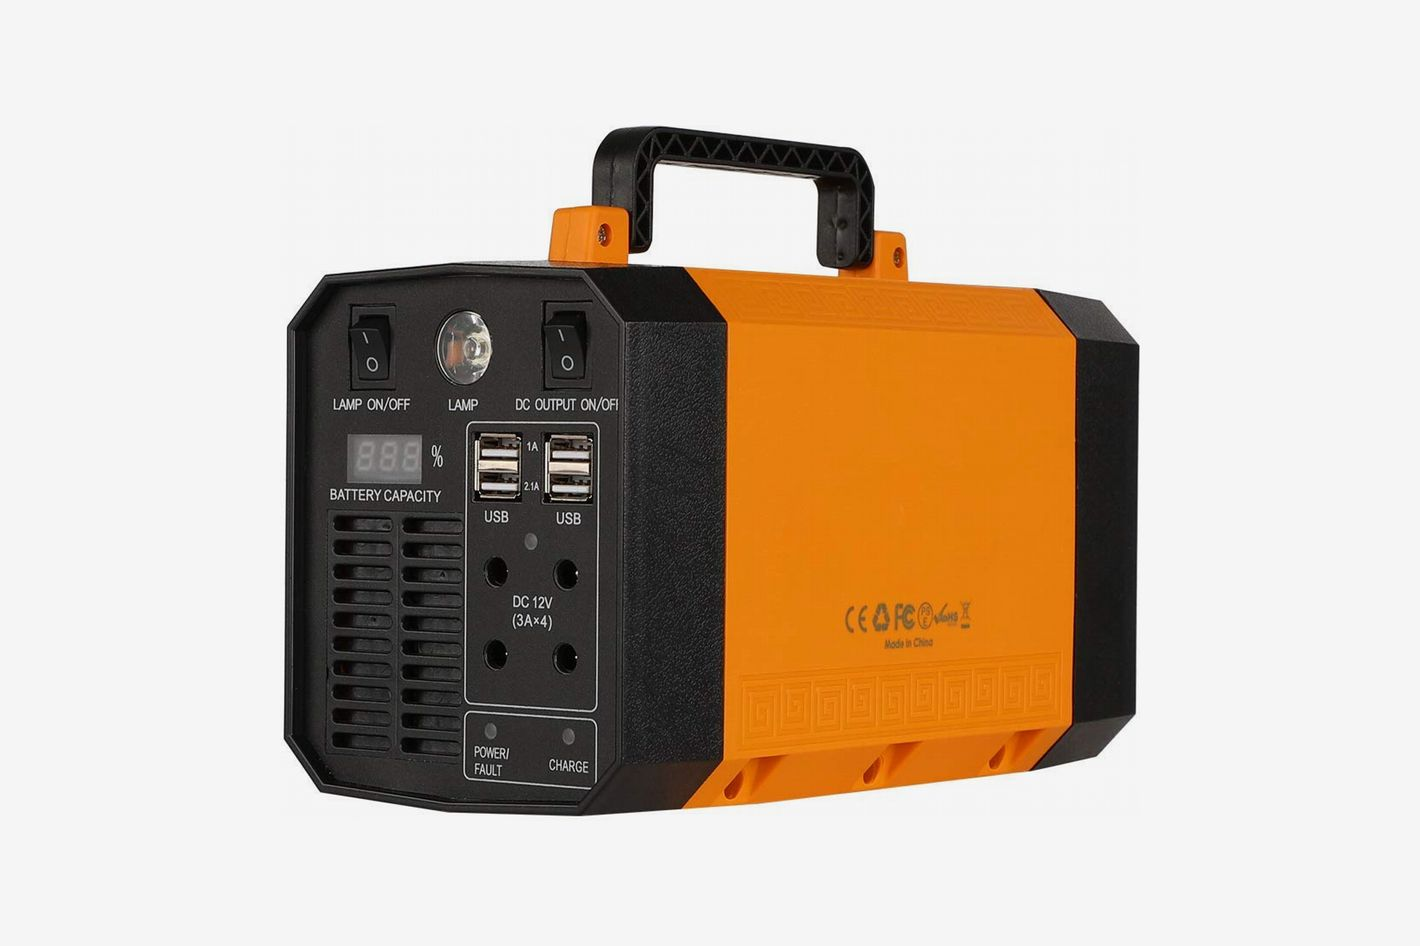 EasyFocus Portable Power Station 200Wh Solar Generator